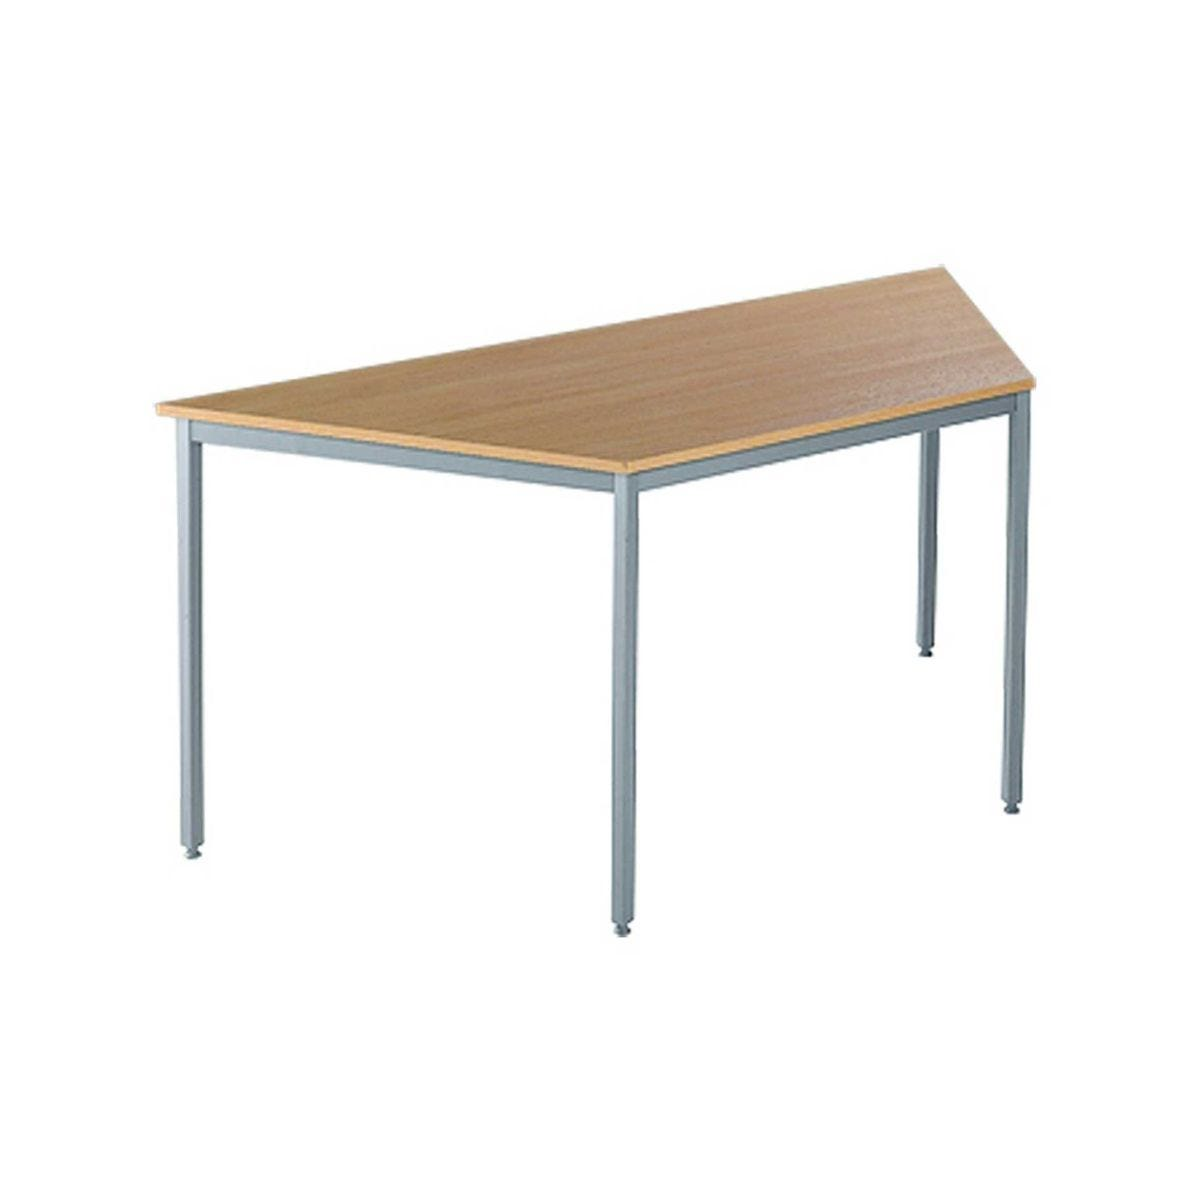 Flexi-table Trapezoidal Table with Silver Frame, Oak Effect